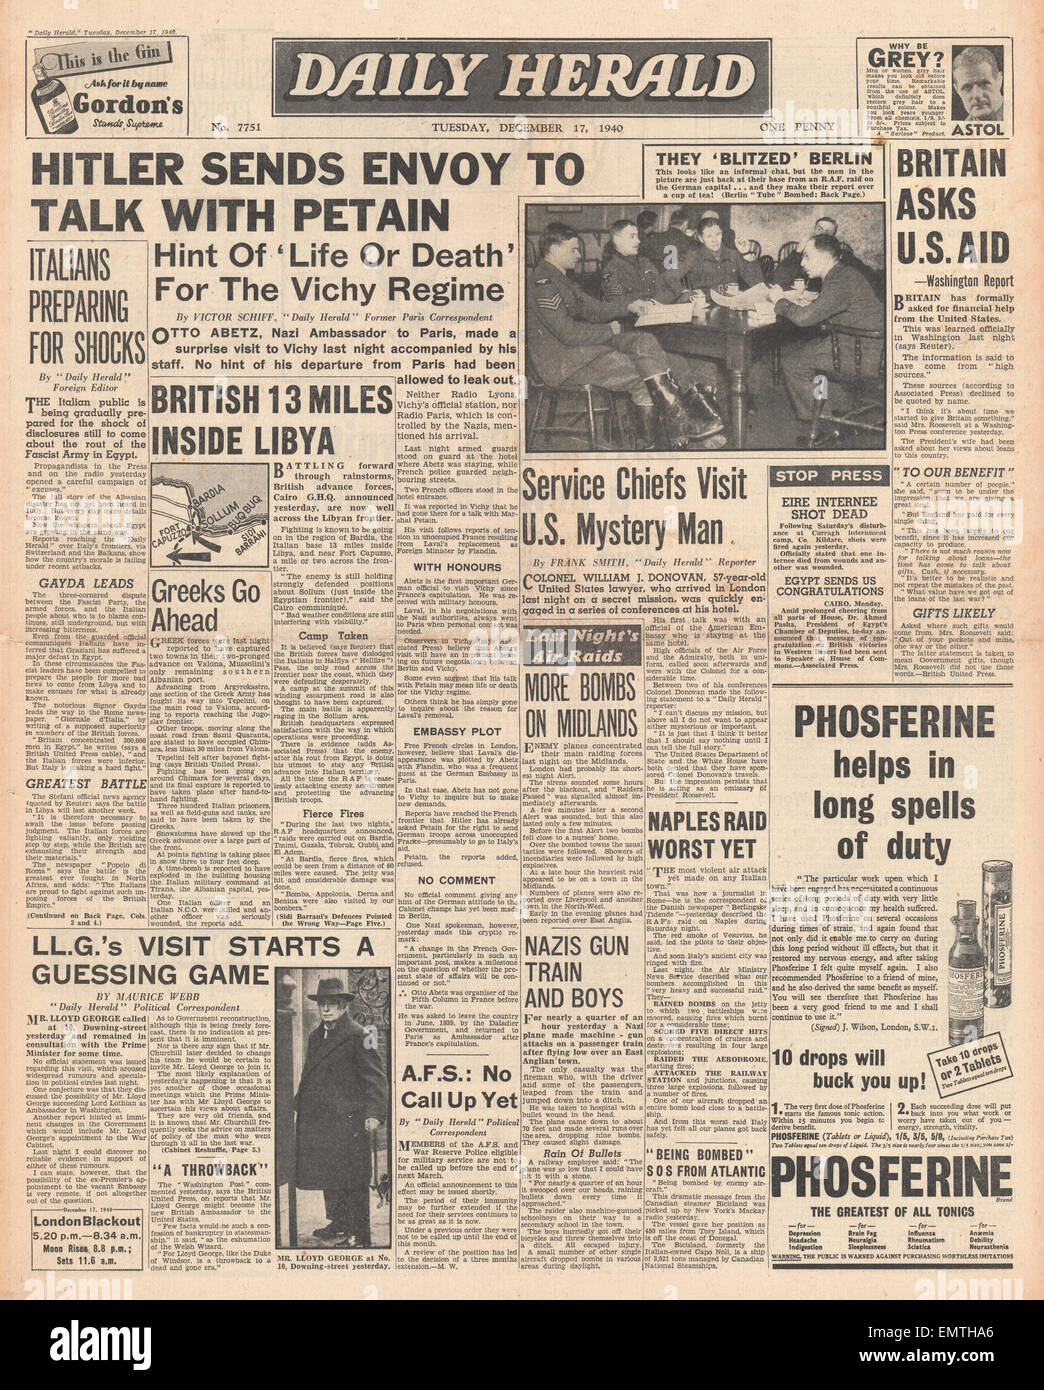 1940 front page Daily Herald Hitler sends envoy to talk with Petain - Stock Image